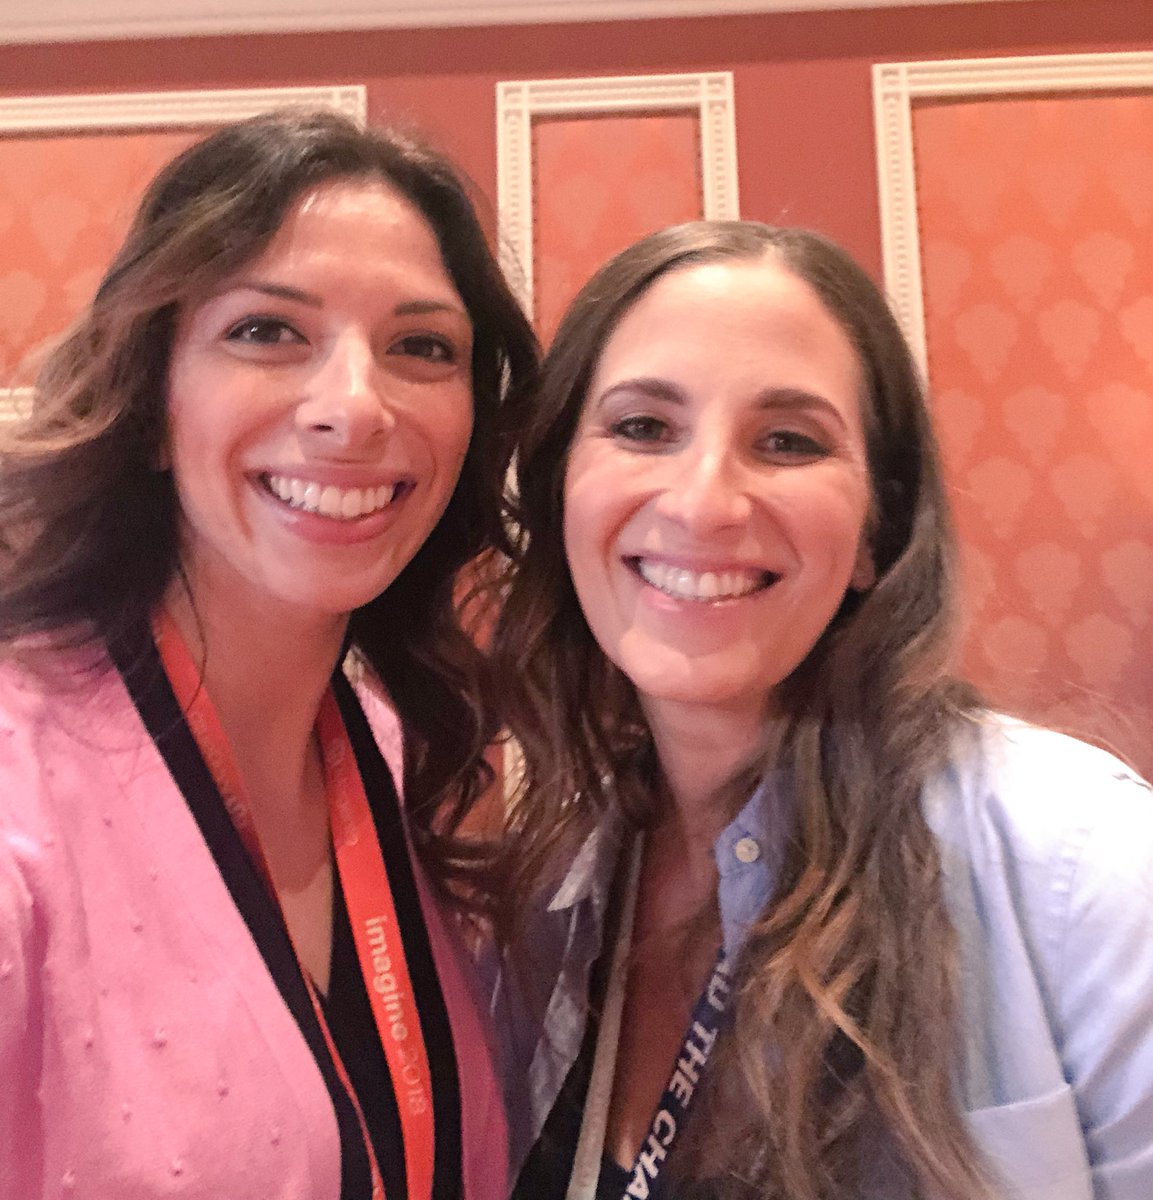 AmandaF_Batista: Truly as sweet as her cupcakes! @bakedbymelissa at #magentoimagine https://t.co/bWCDOmWDPO